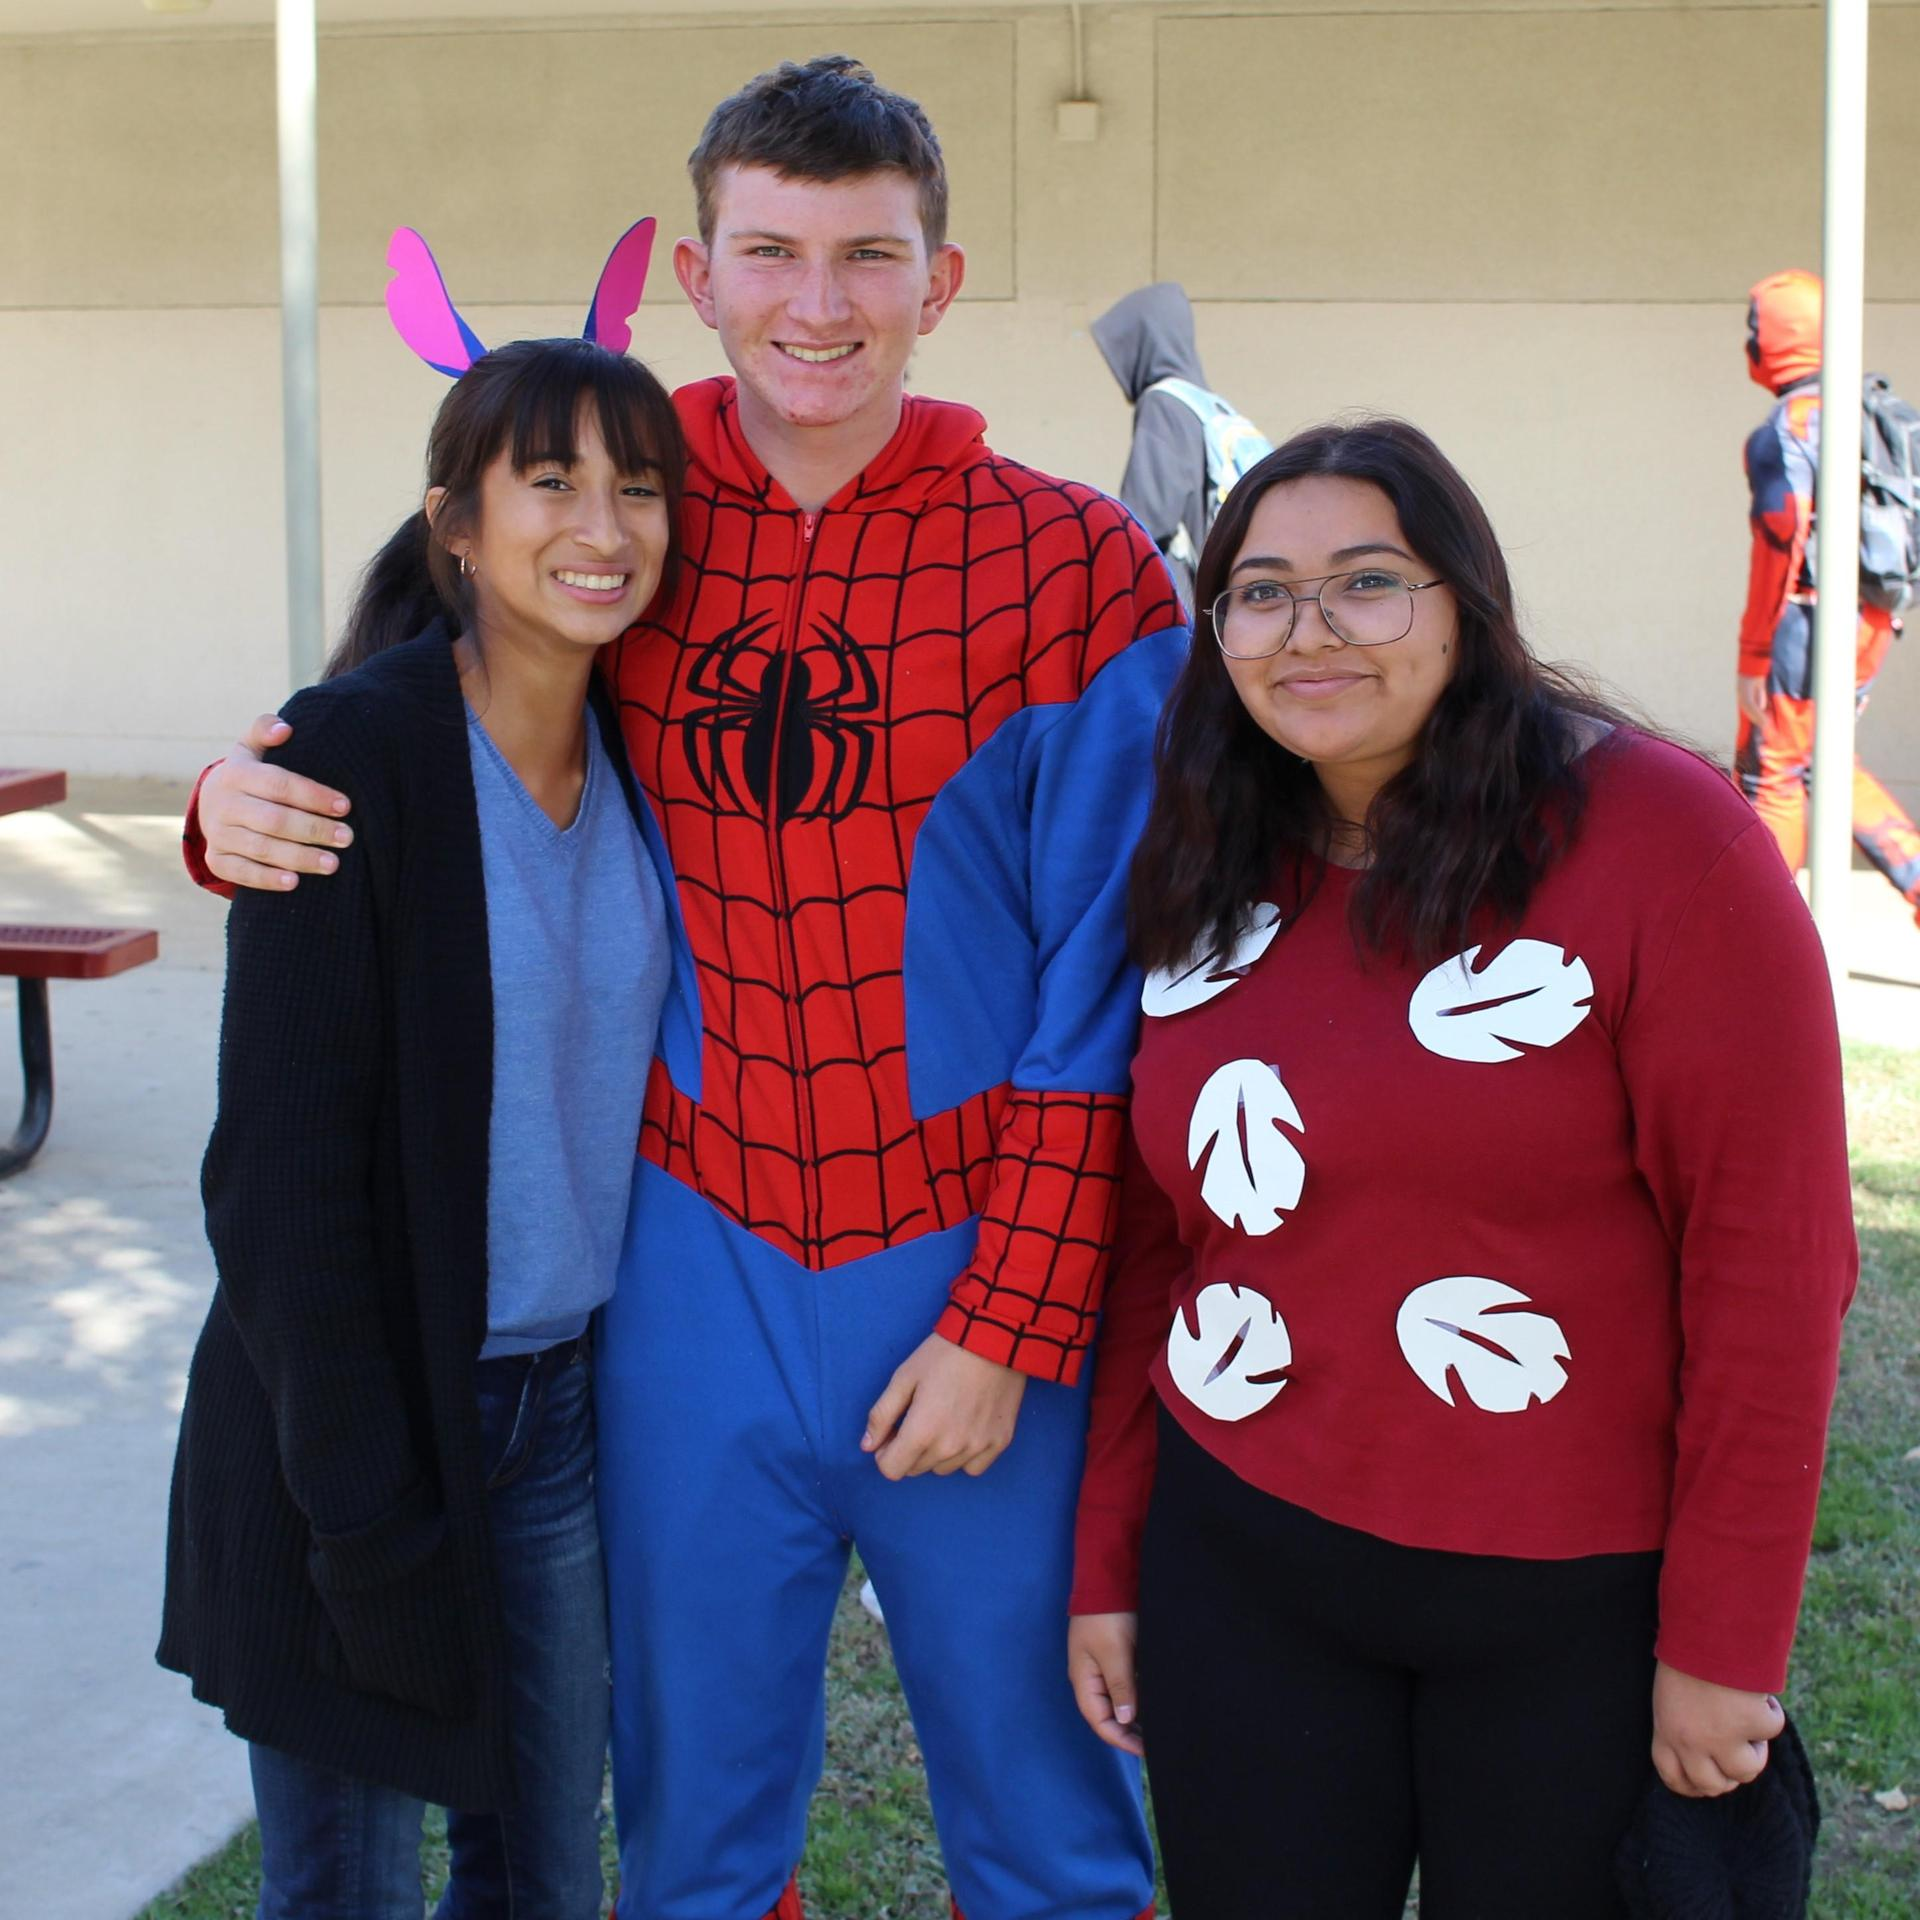 Sabrina Davila as Stitch, Evan Sotelo as Spiderman, Naomi Hernandez as Lilo